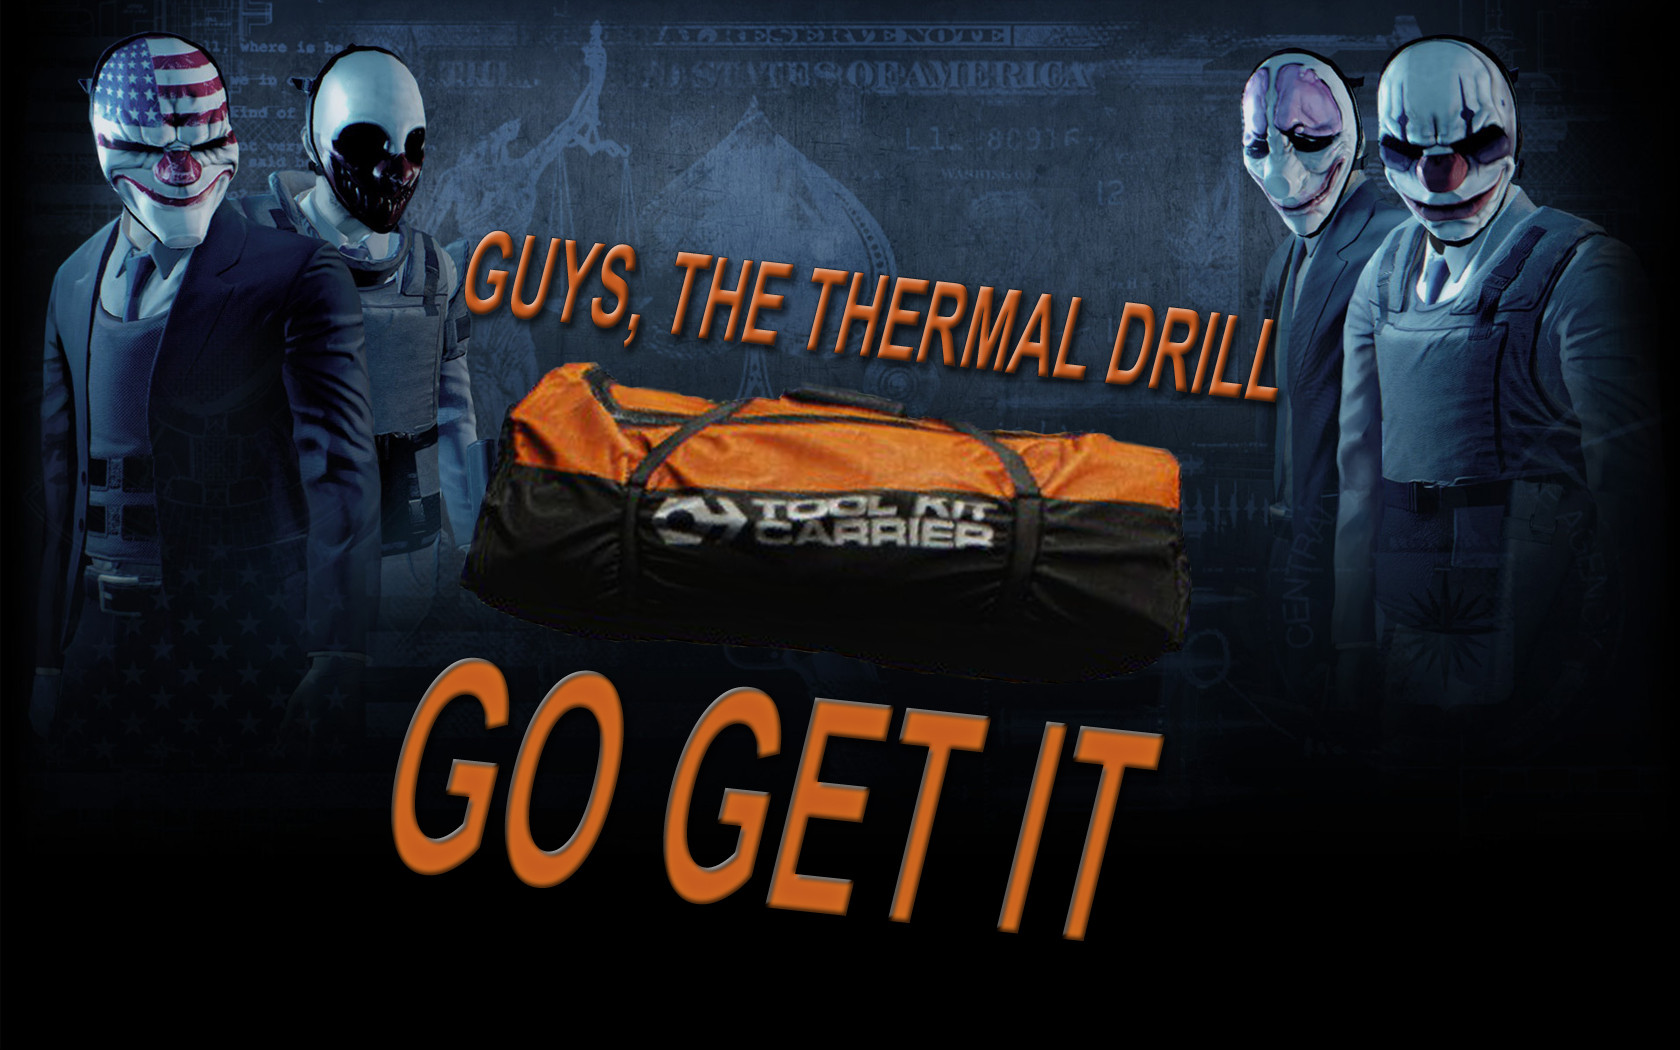 image of The Thermal Drill